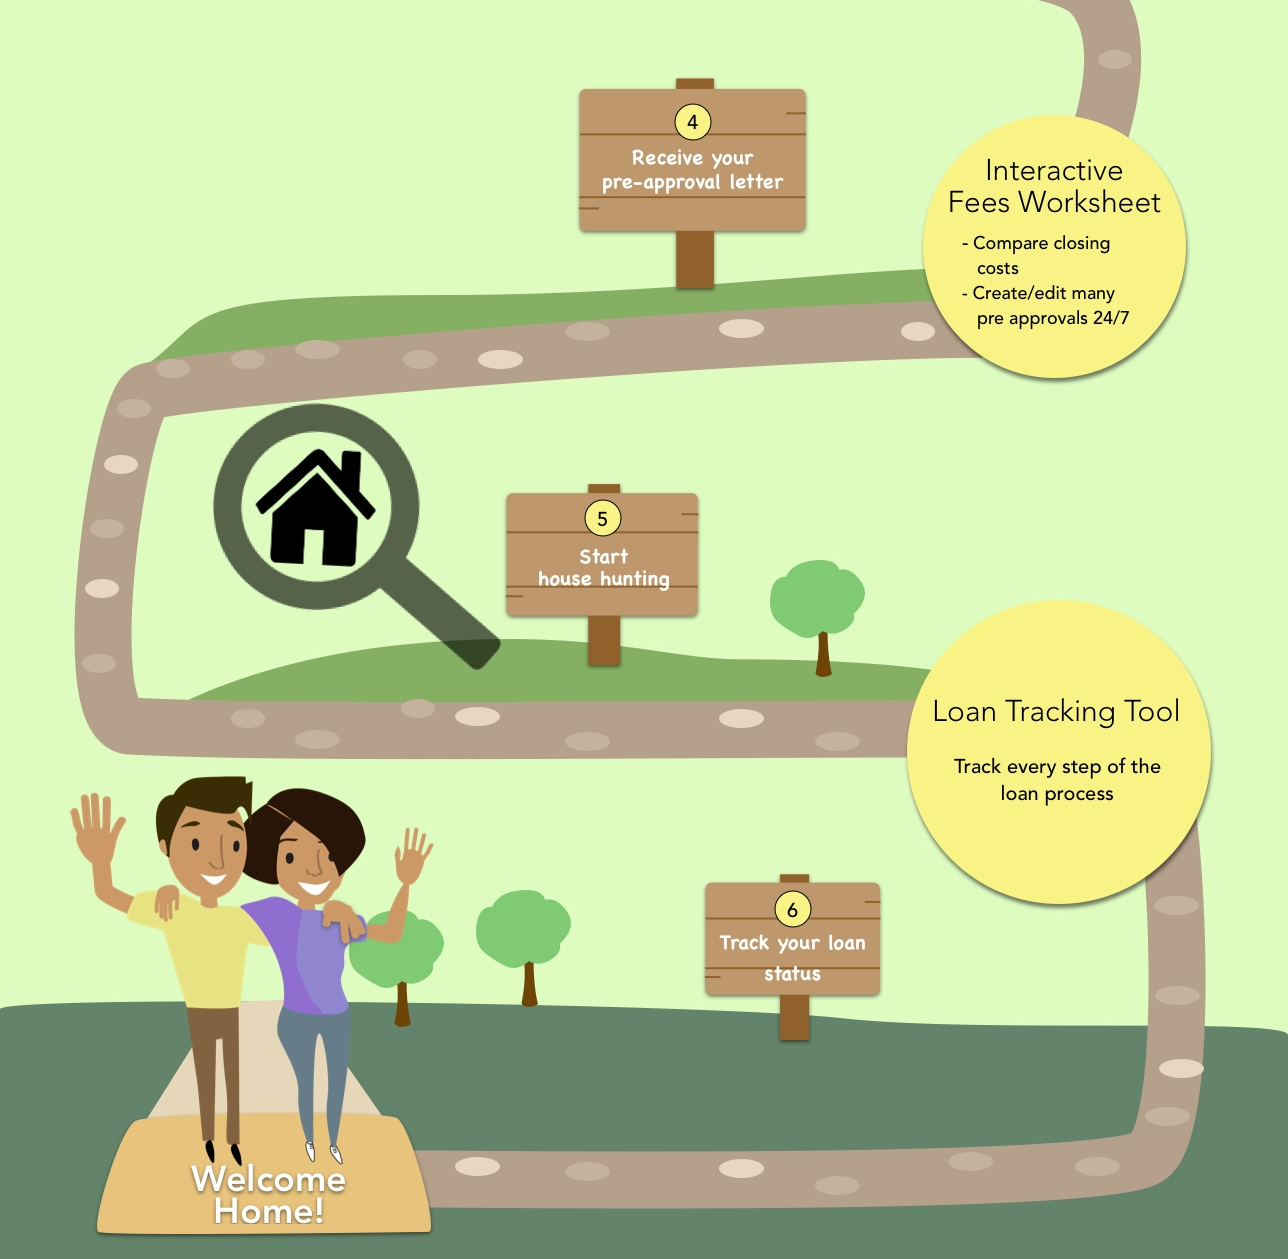 The Borrower's Journey to Buying a Home